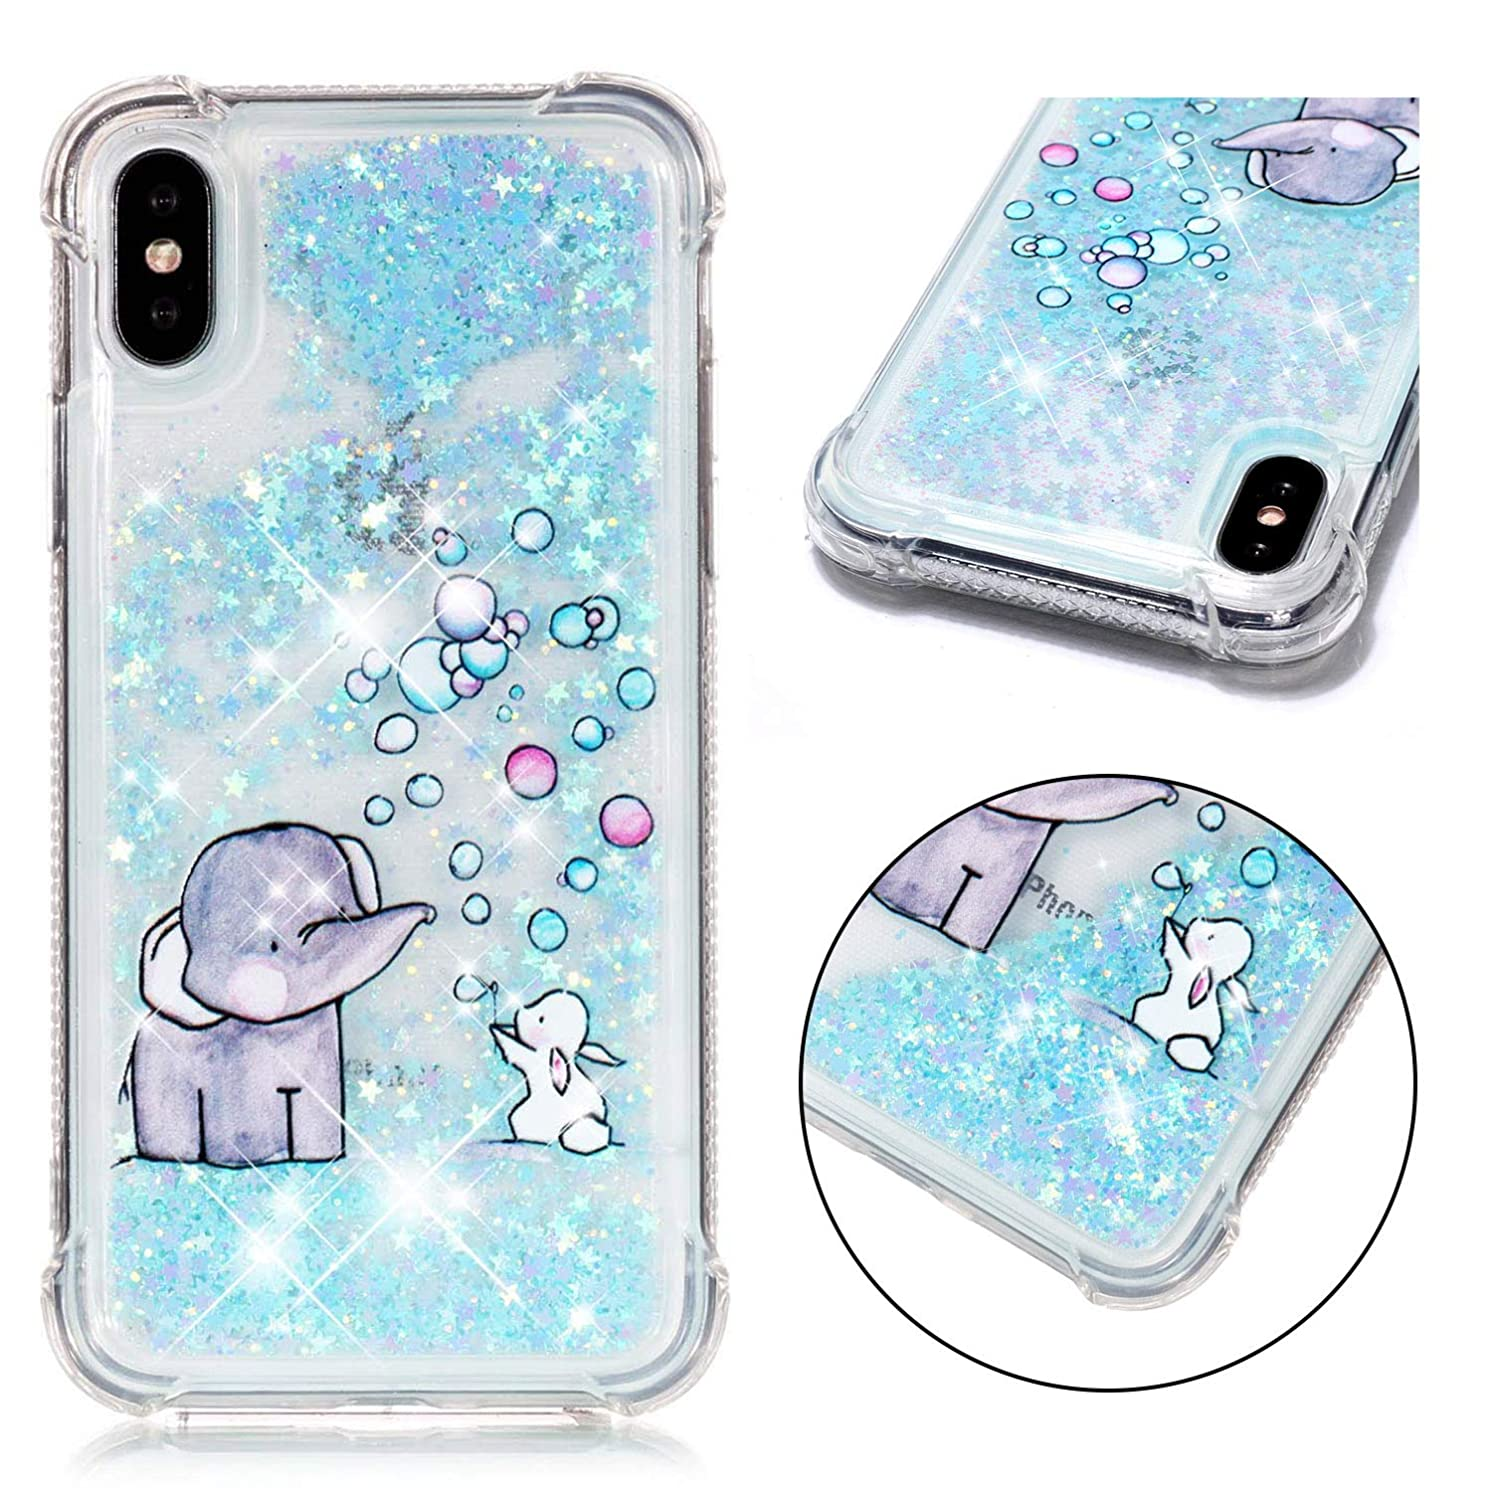 iPhone Xs Case, iPhone X Case, ZERMU Shockproof Cartoon Pattern Durable Waterfall Fusion Moving Liquid Sparkling TPU Bumper Luxury Bling Quicksand Flowing Floating Glitter Case for iPhone Xs/iPhone X